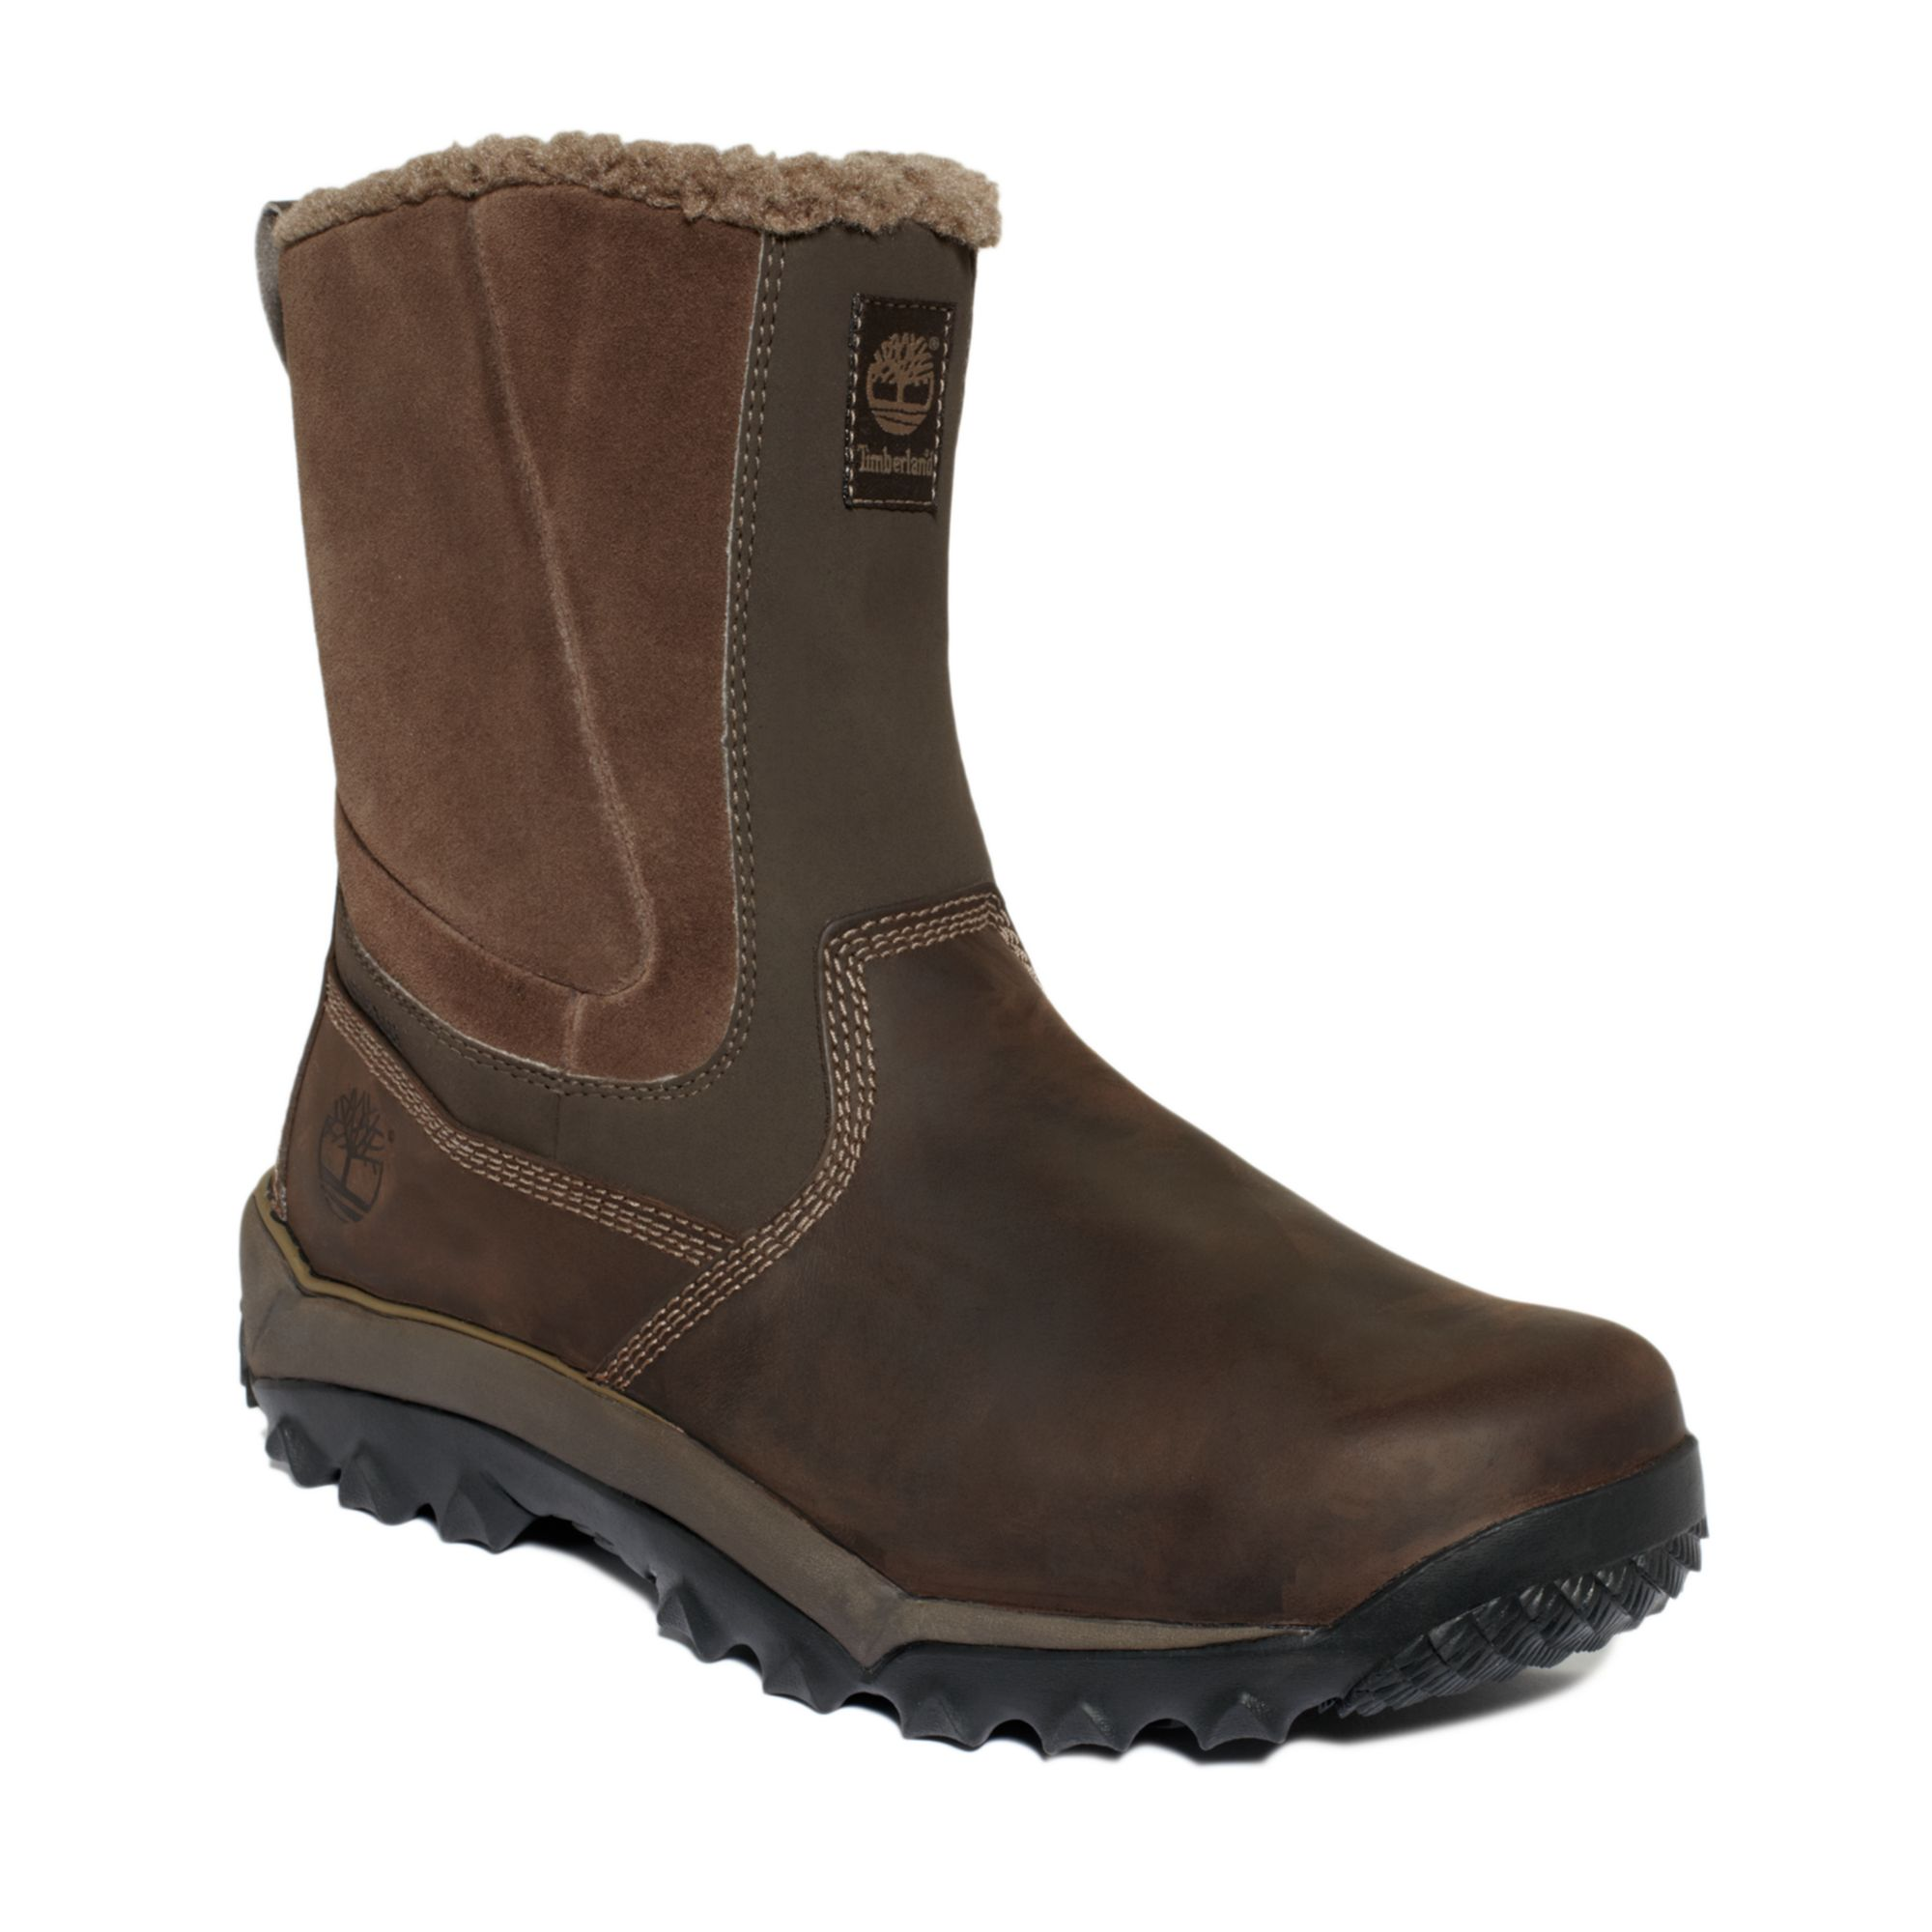 UGG Waterproof Womens with FREE Shipping & Exchanges, and a % price guarantee. Choose from a huge selection of UGG Waterproof Womens styles.